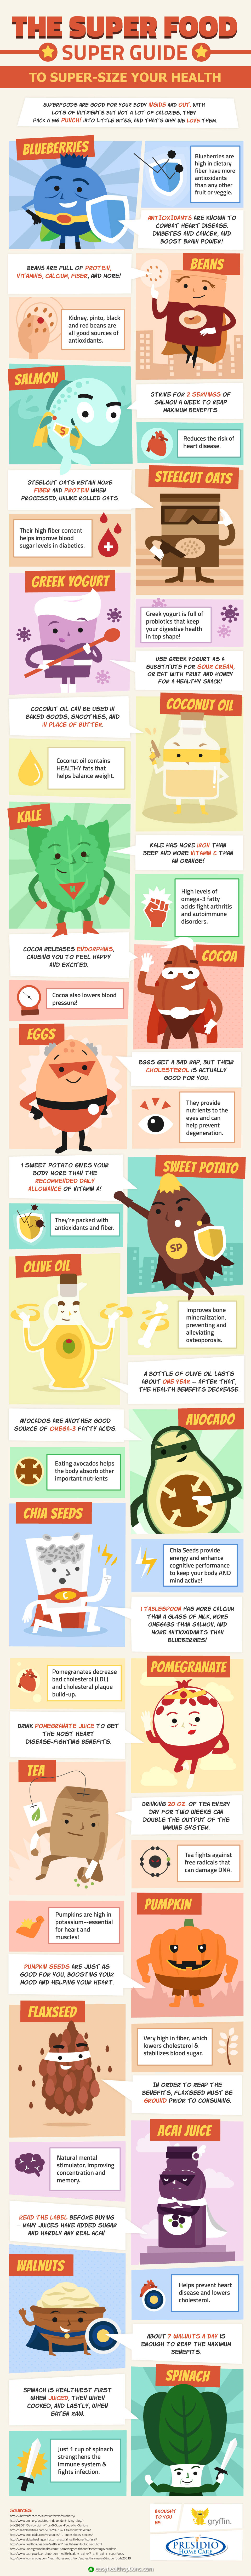 Superfoods that super-size your health [infographic]